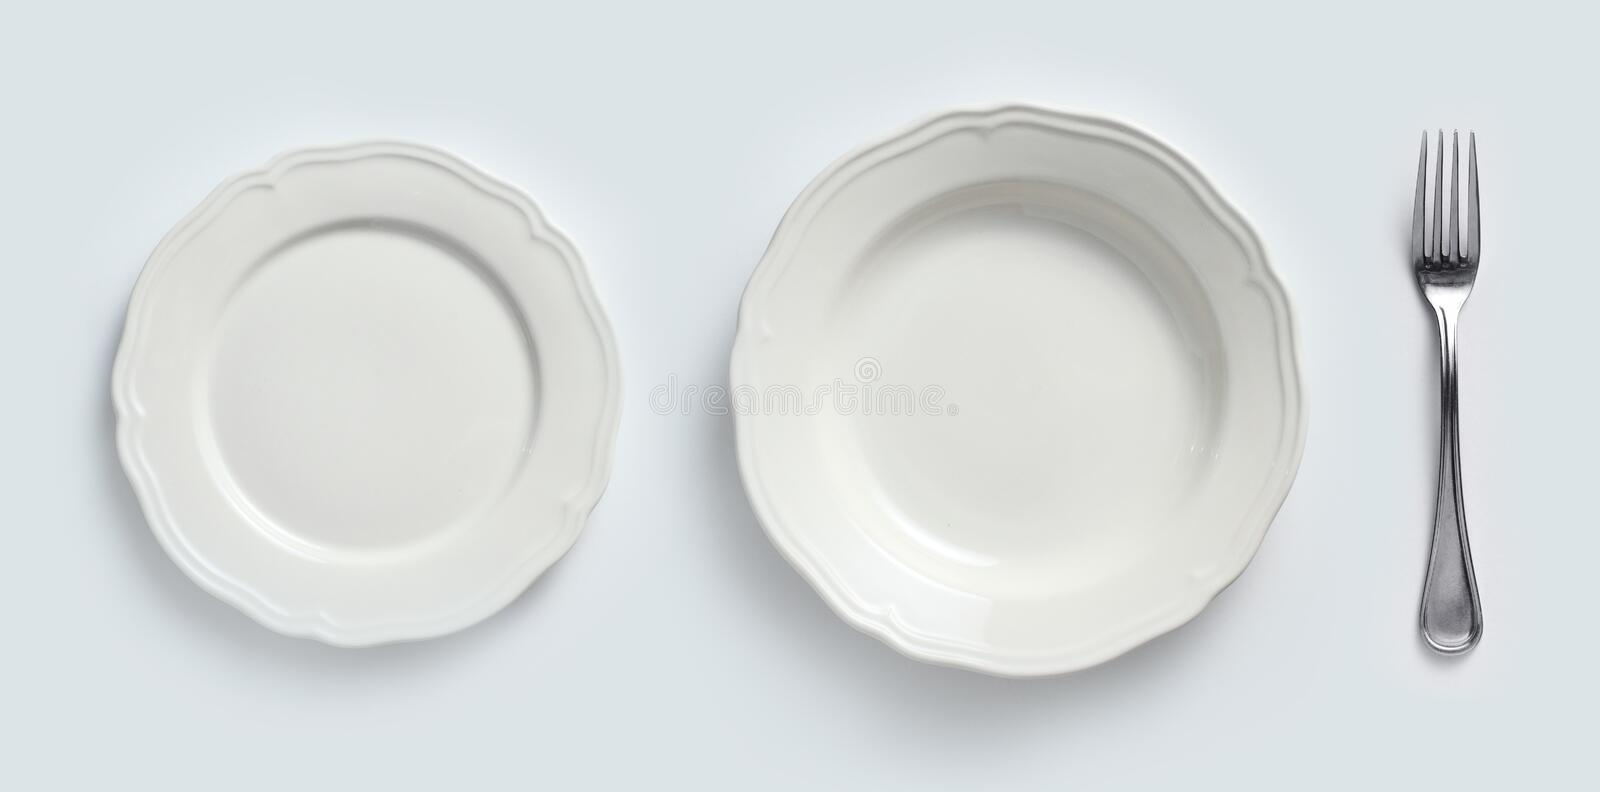 Ceramic Plates & Cutlery Stock Photos